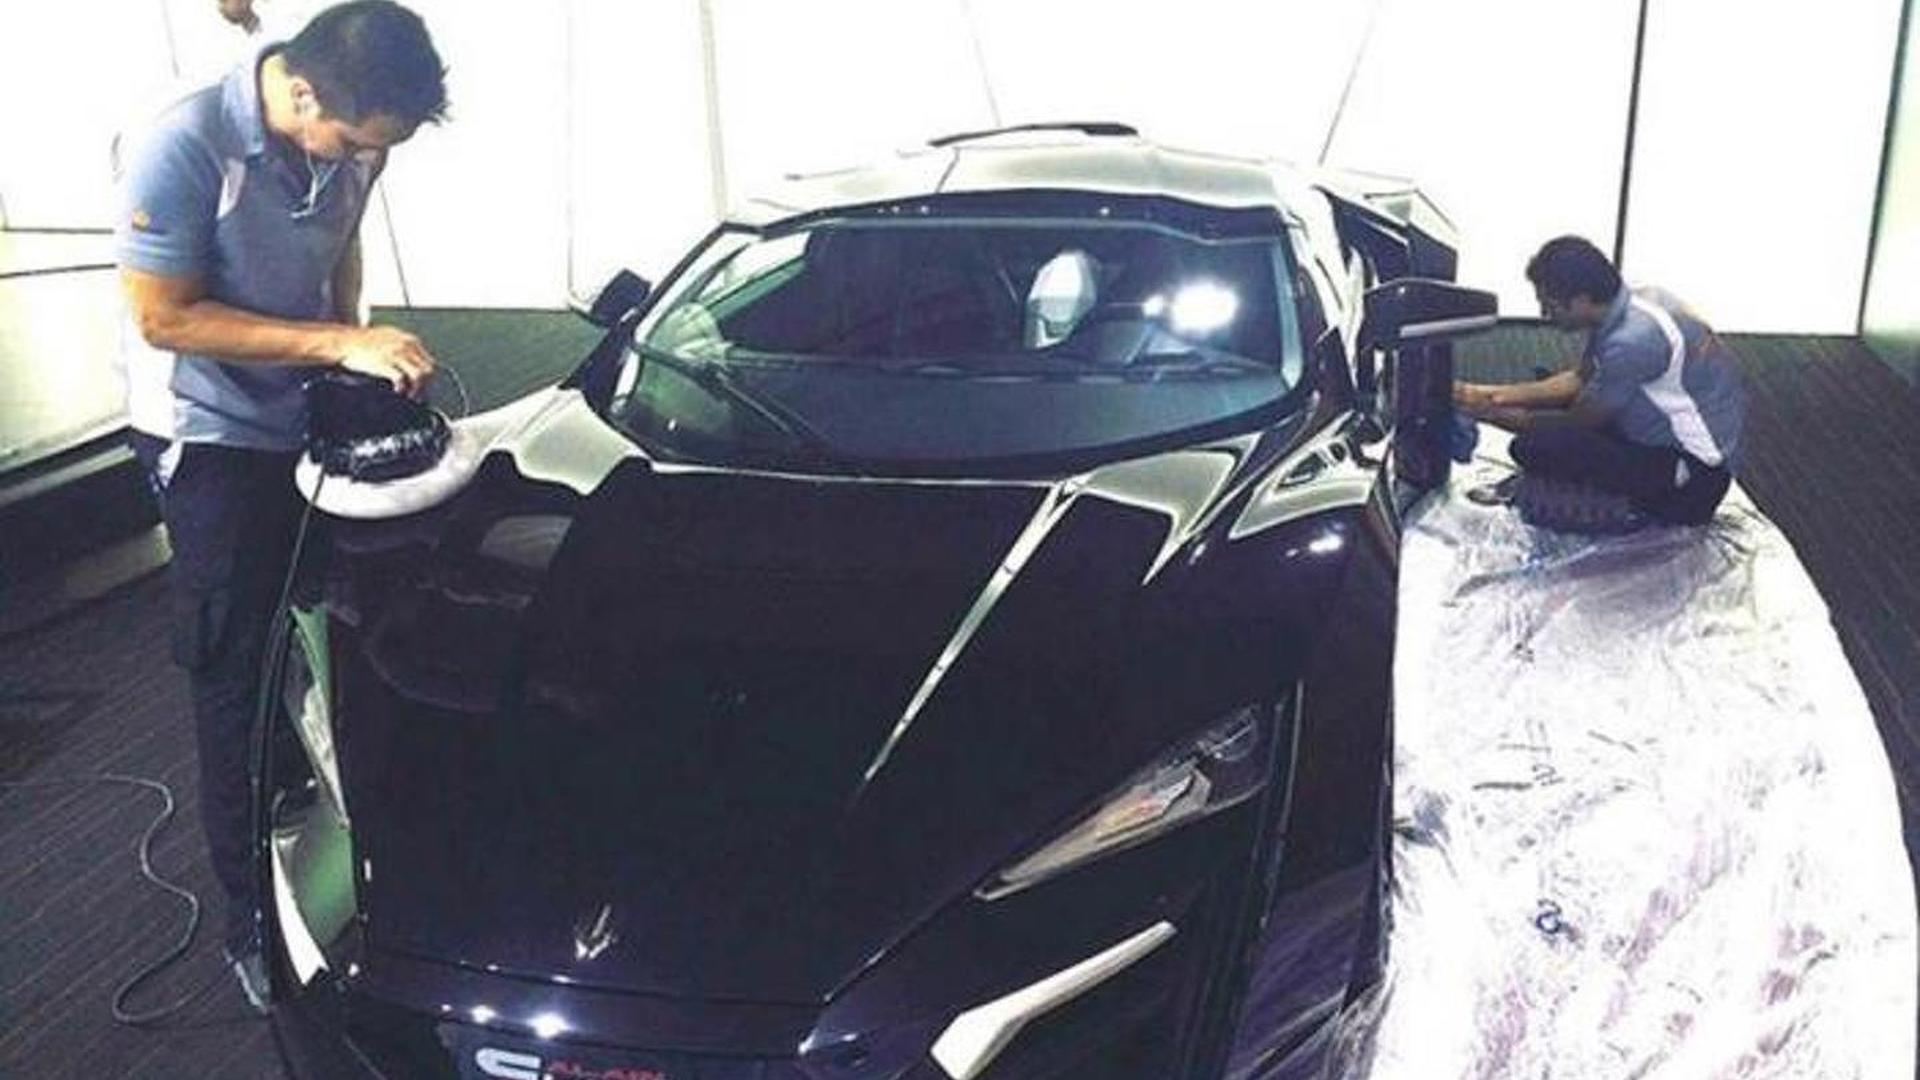 Lykan Hypersport listed for sale in Dubai for whopping 3.4M USD